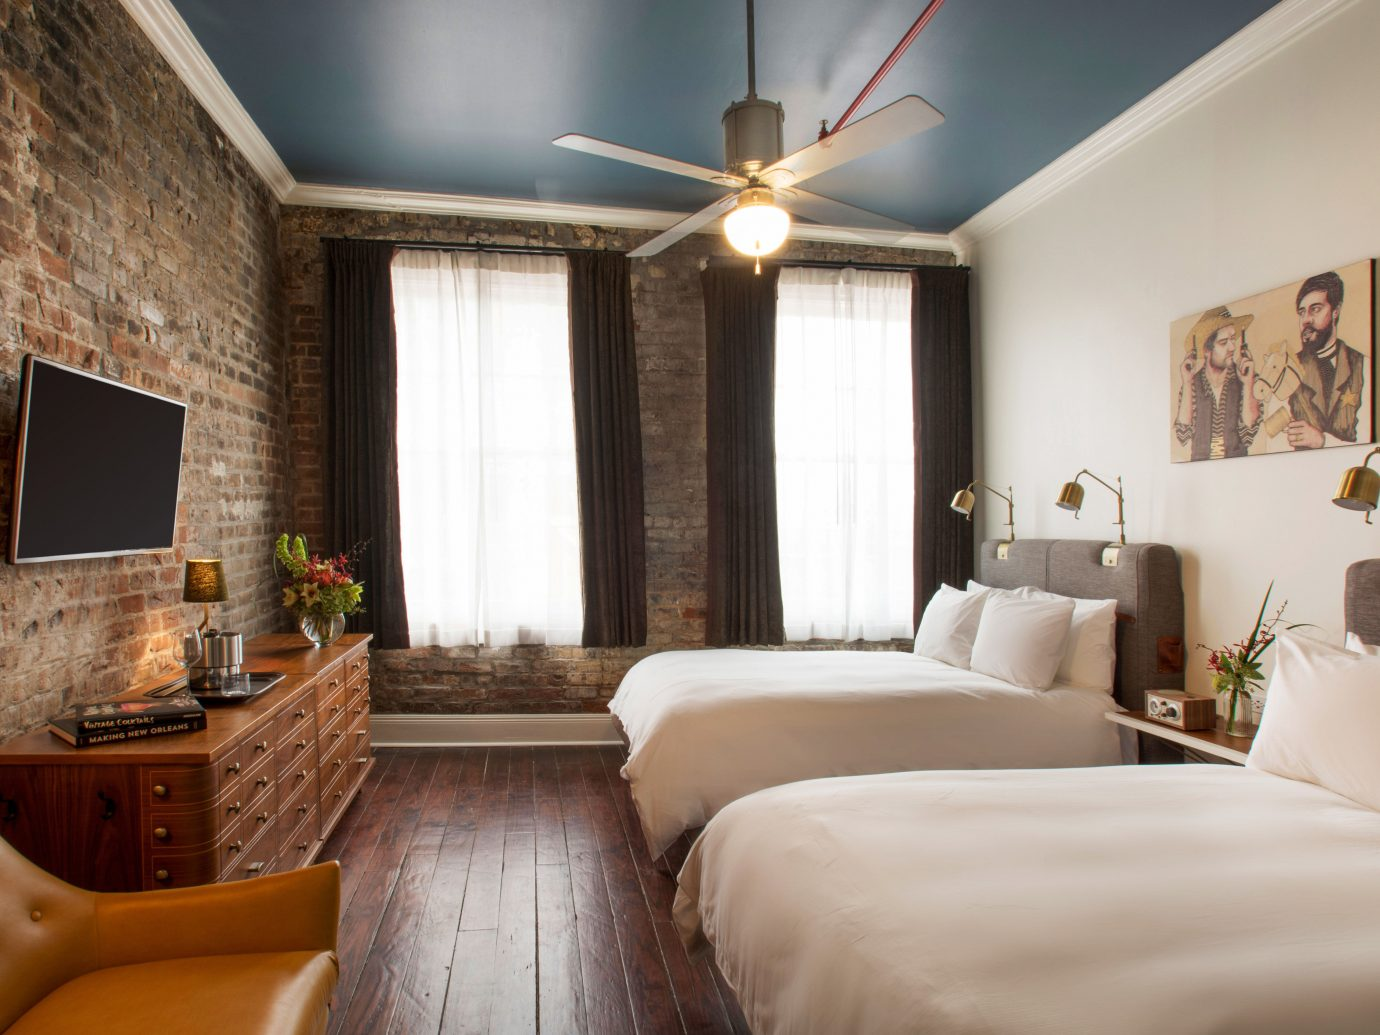 Bedroom Boutique Hotels Hotels Luxury Romantic Rustic Suite Trip Ideas indoor bed wall sofa room property window estate living room home hotel interior design cottage real estate farmhouse decorated